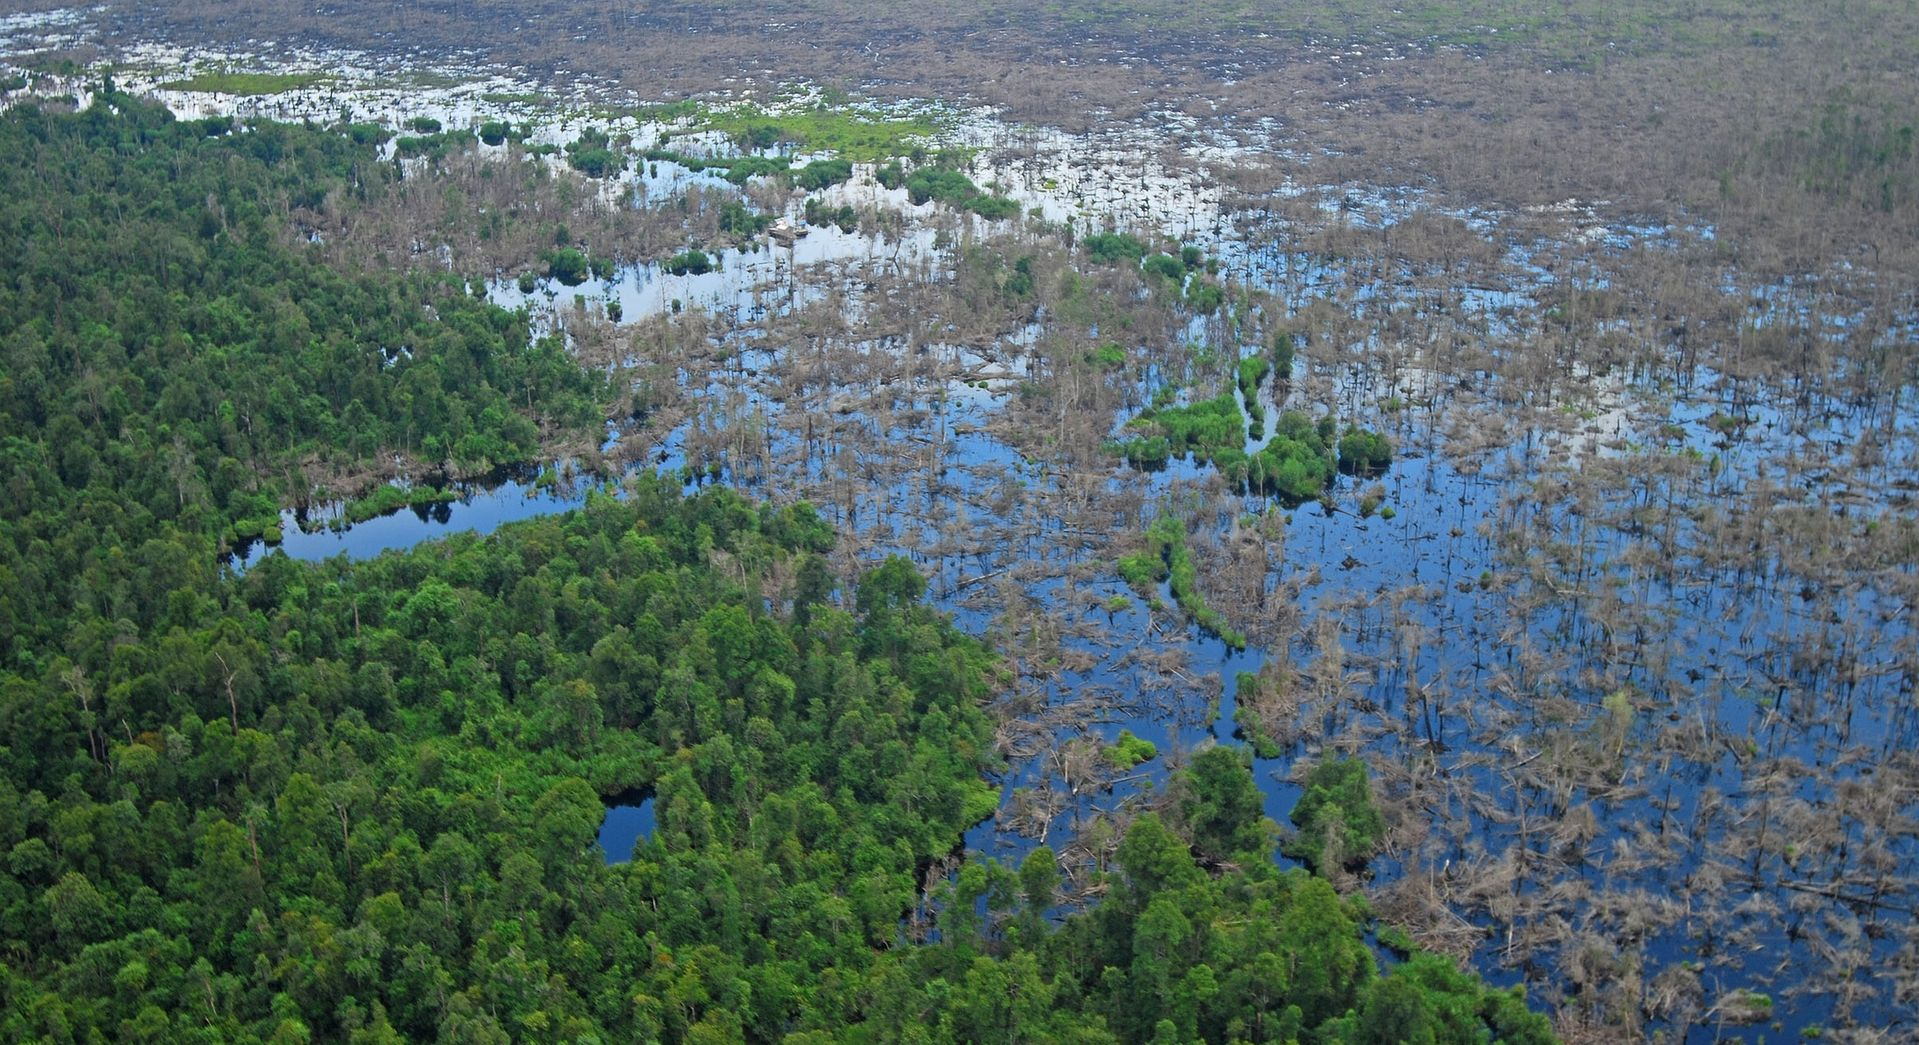 3D mapping of 15 million hectares of peatlands supporting BRG - the Indonesian Peat Restoration agency